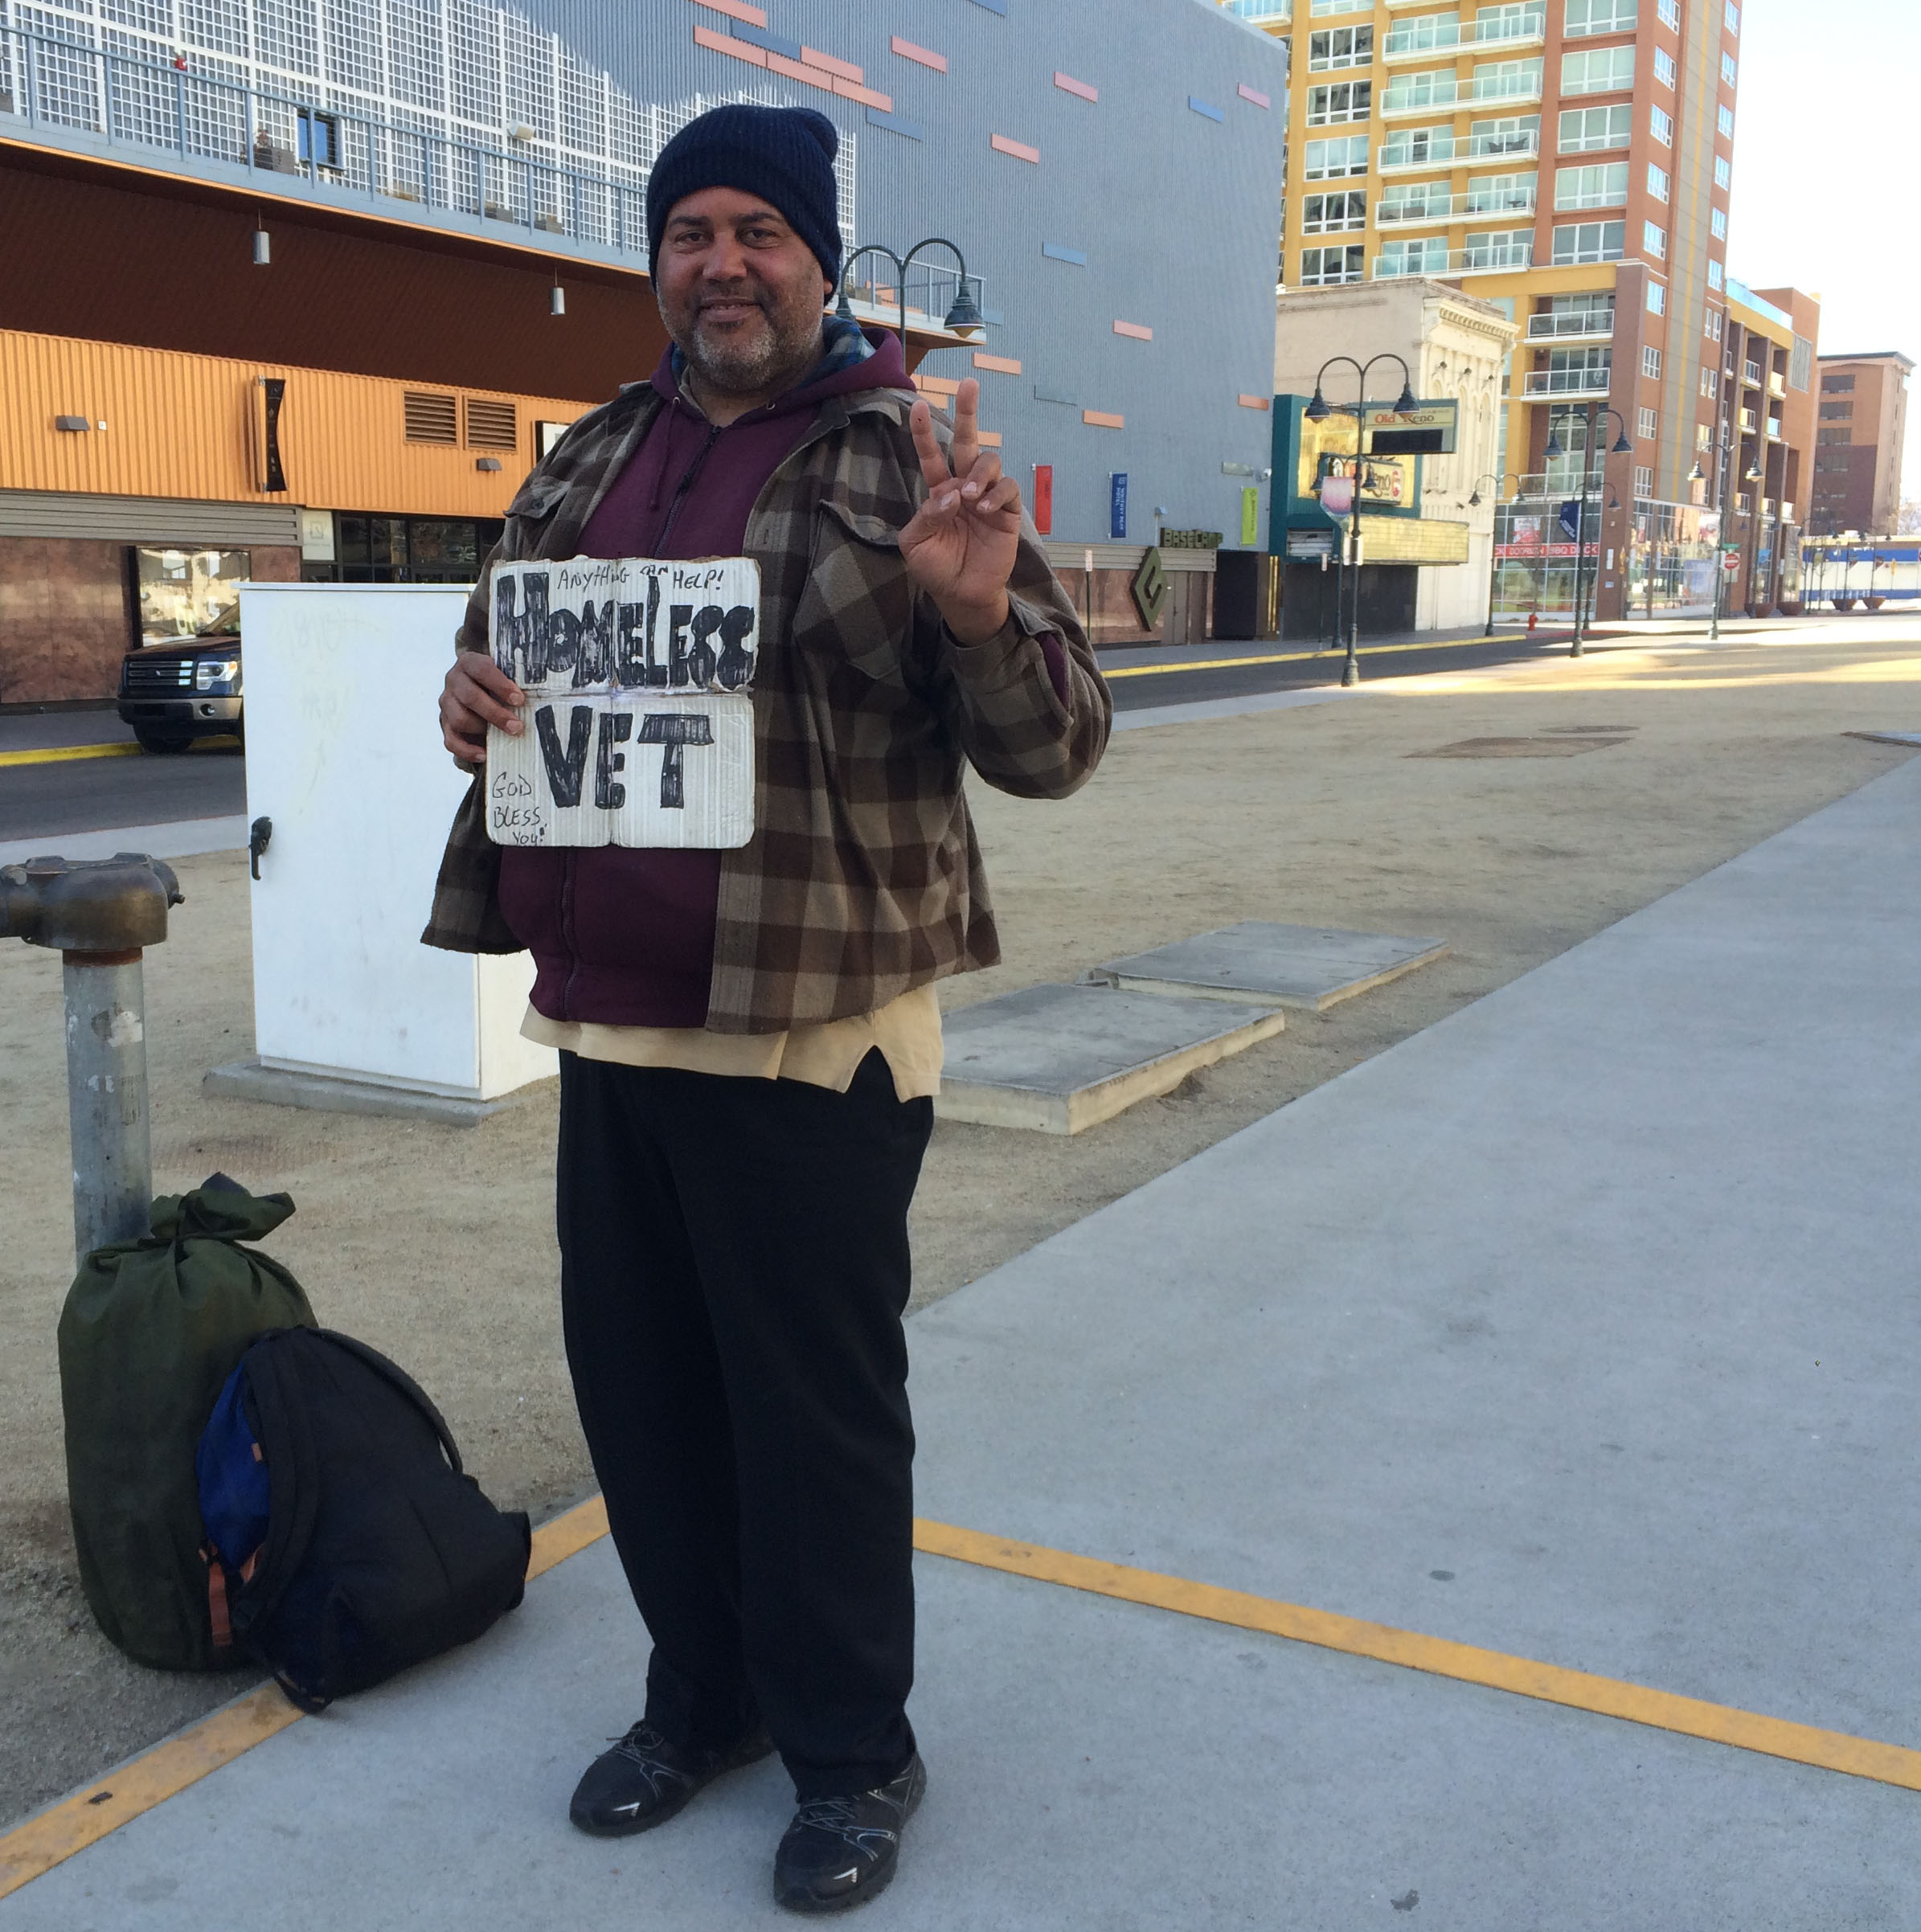 Stephen, a homeless vet in downtown Reno, gives a friendly smile. Photo by Marina Princeau for Our Town Reno.